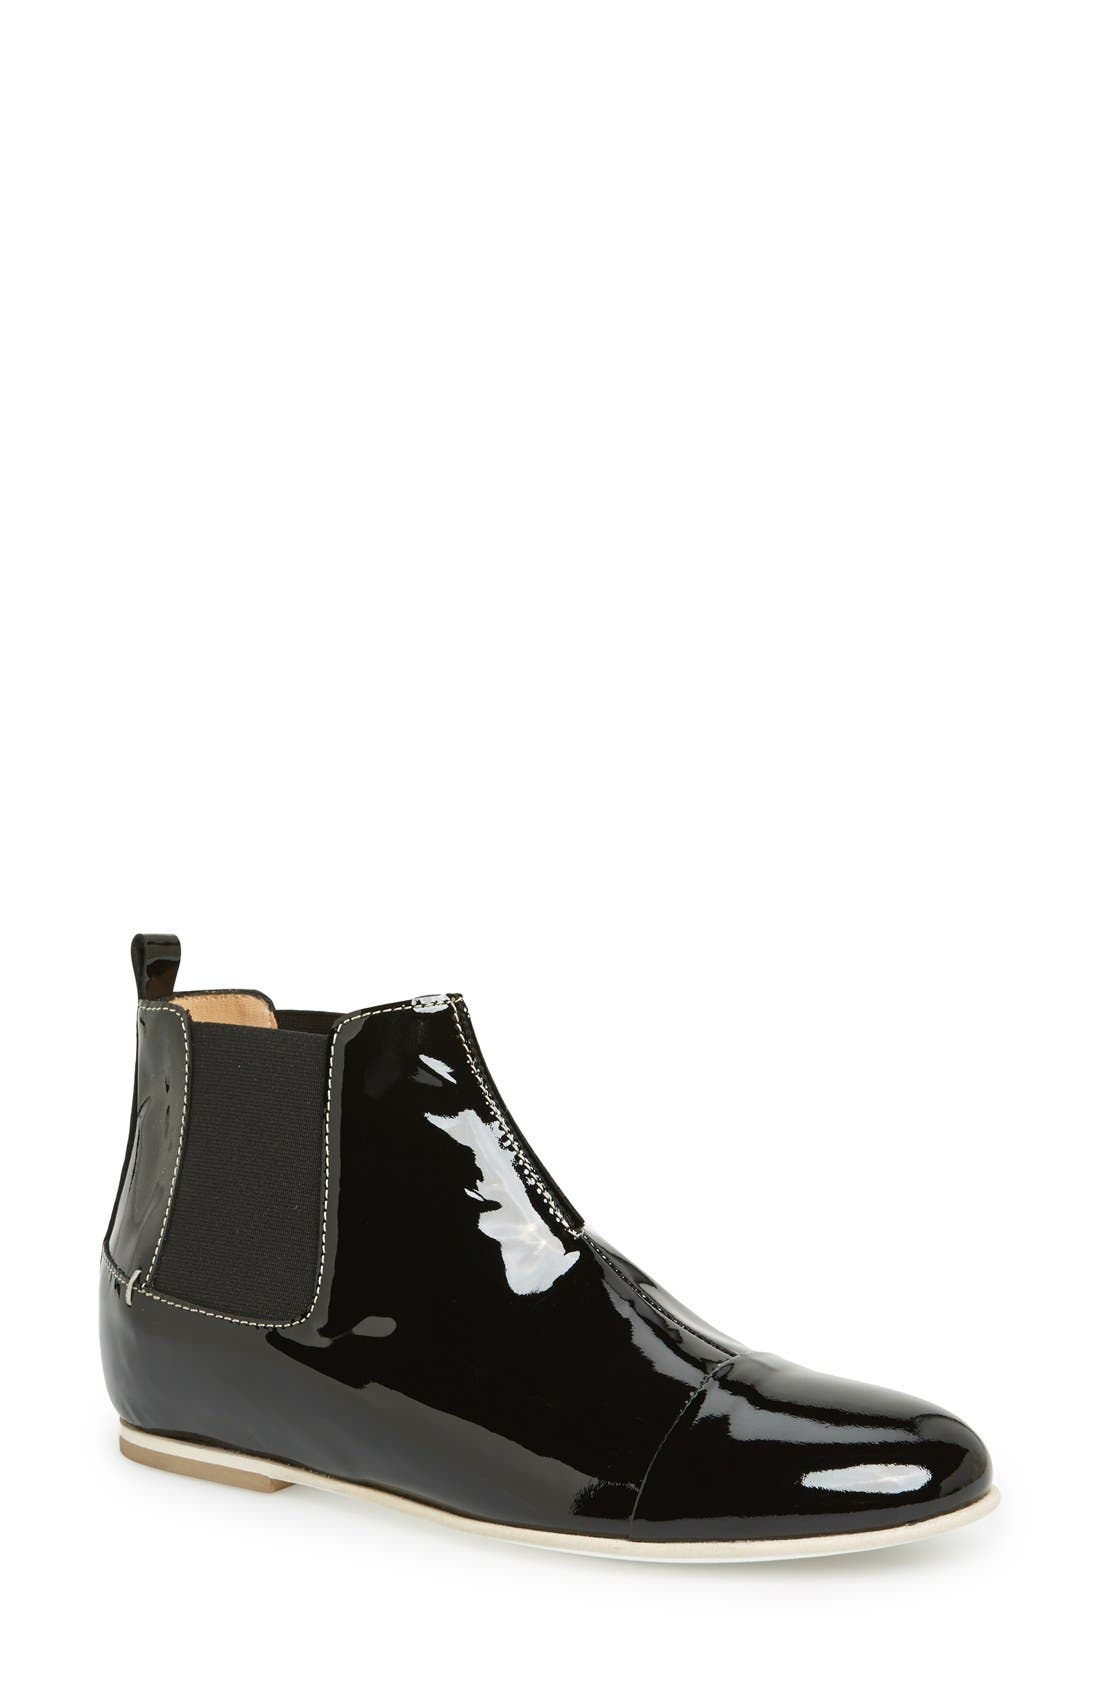 Main Image - Aquatalia by Marvin K. 'Chime' Weatherproof Patent Leather Chelsea Boot (Women)